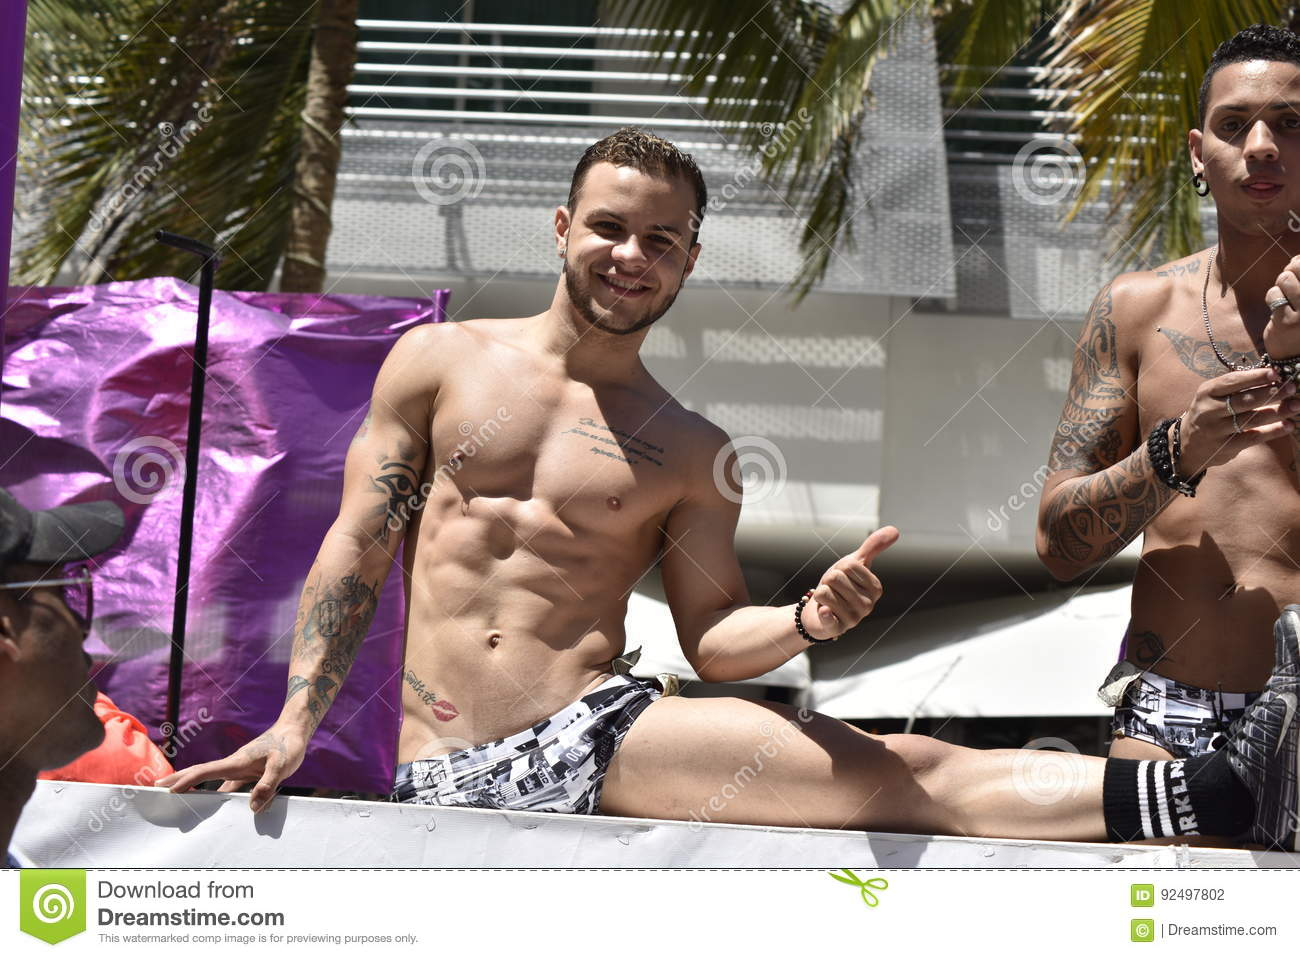 florida gay pride links